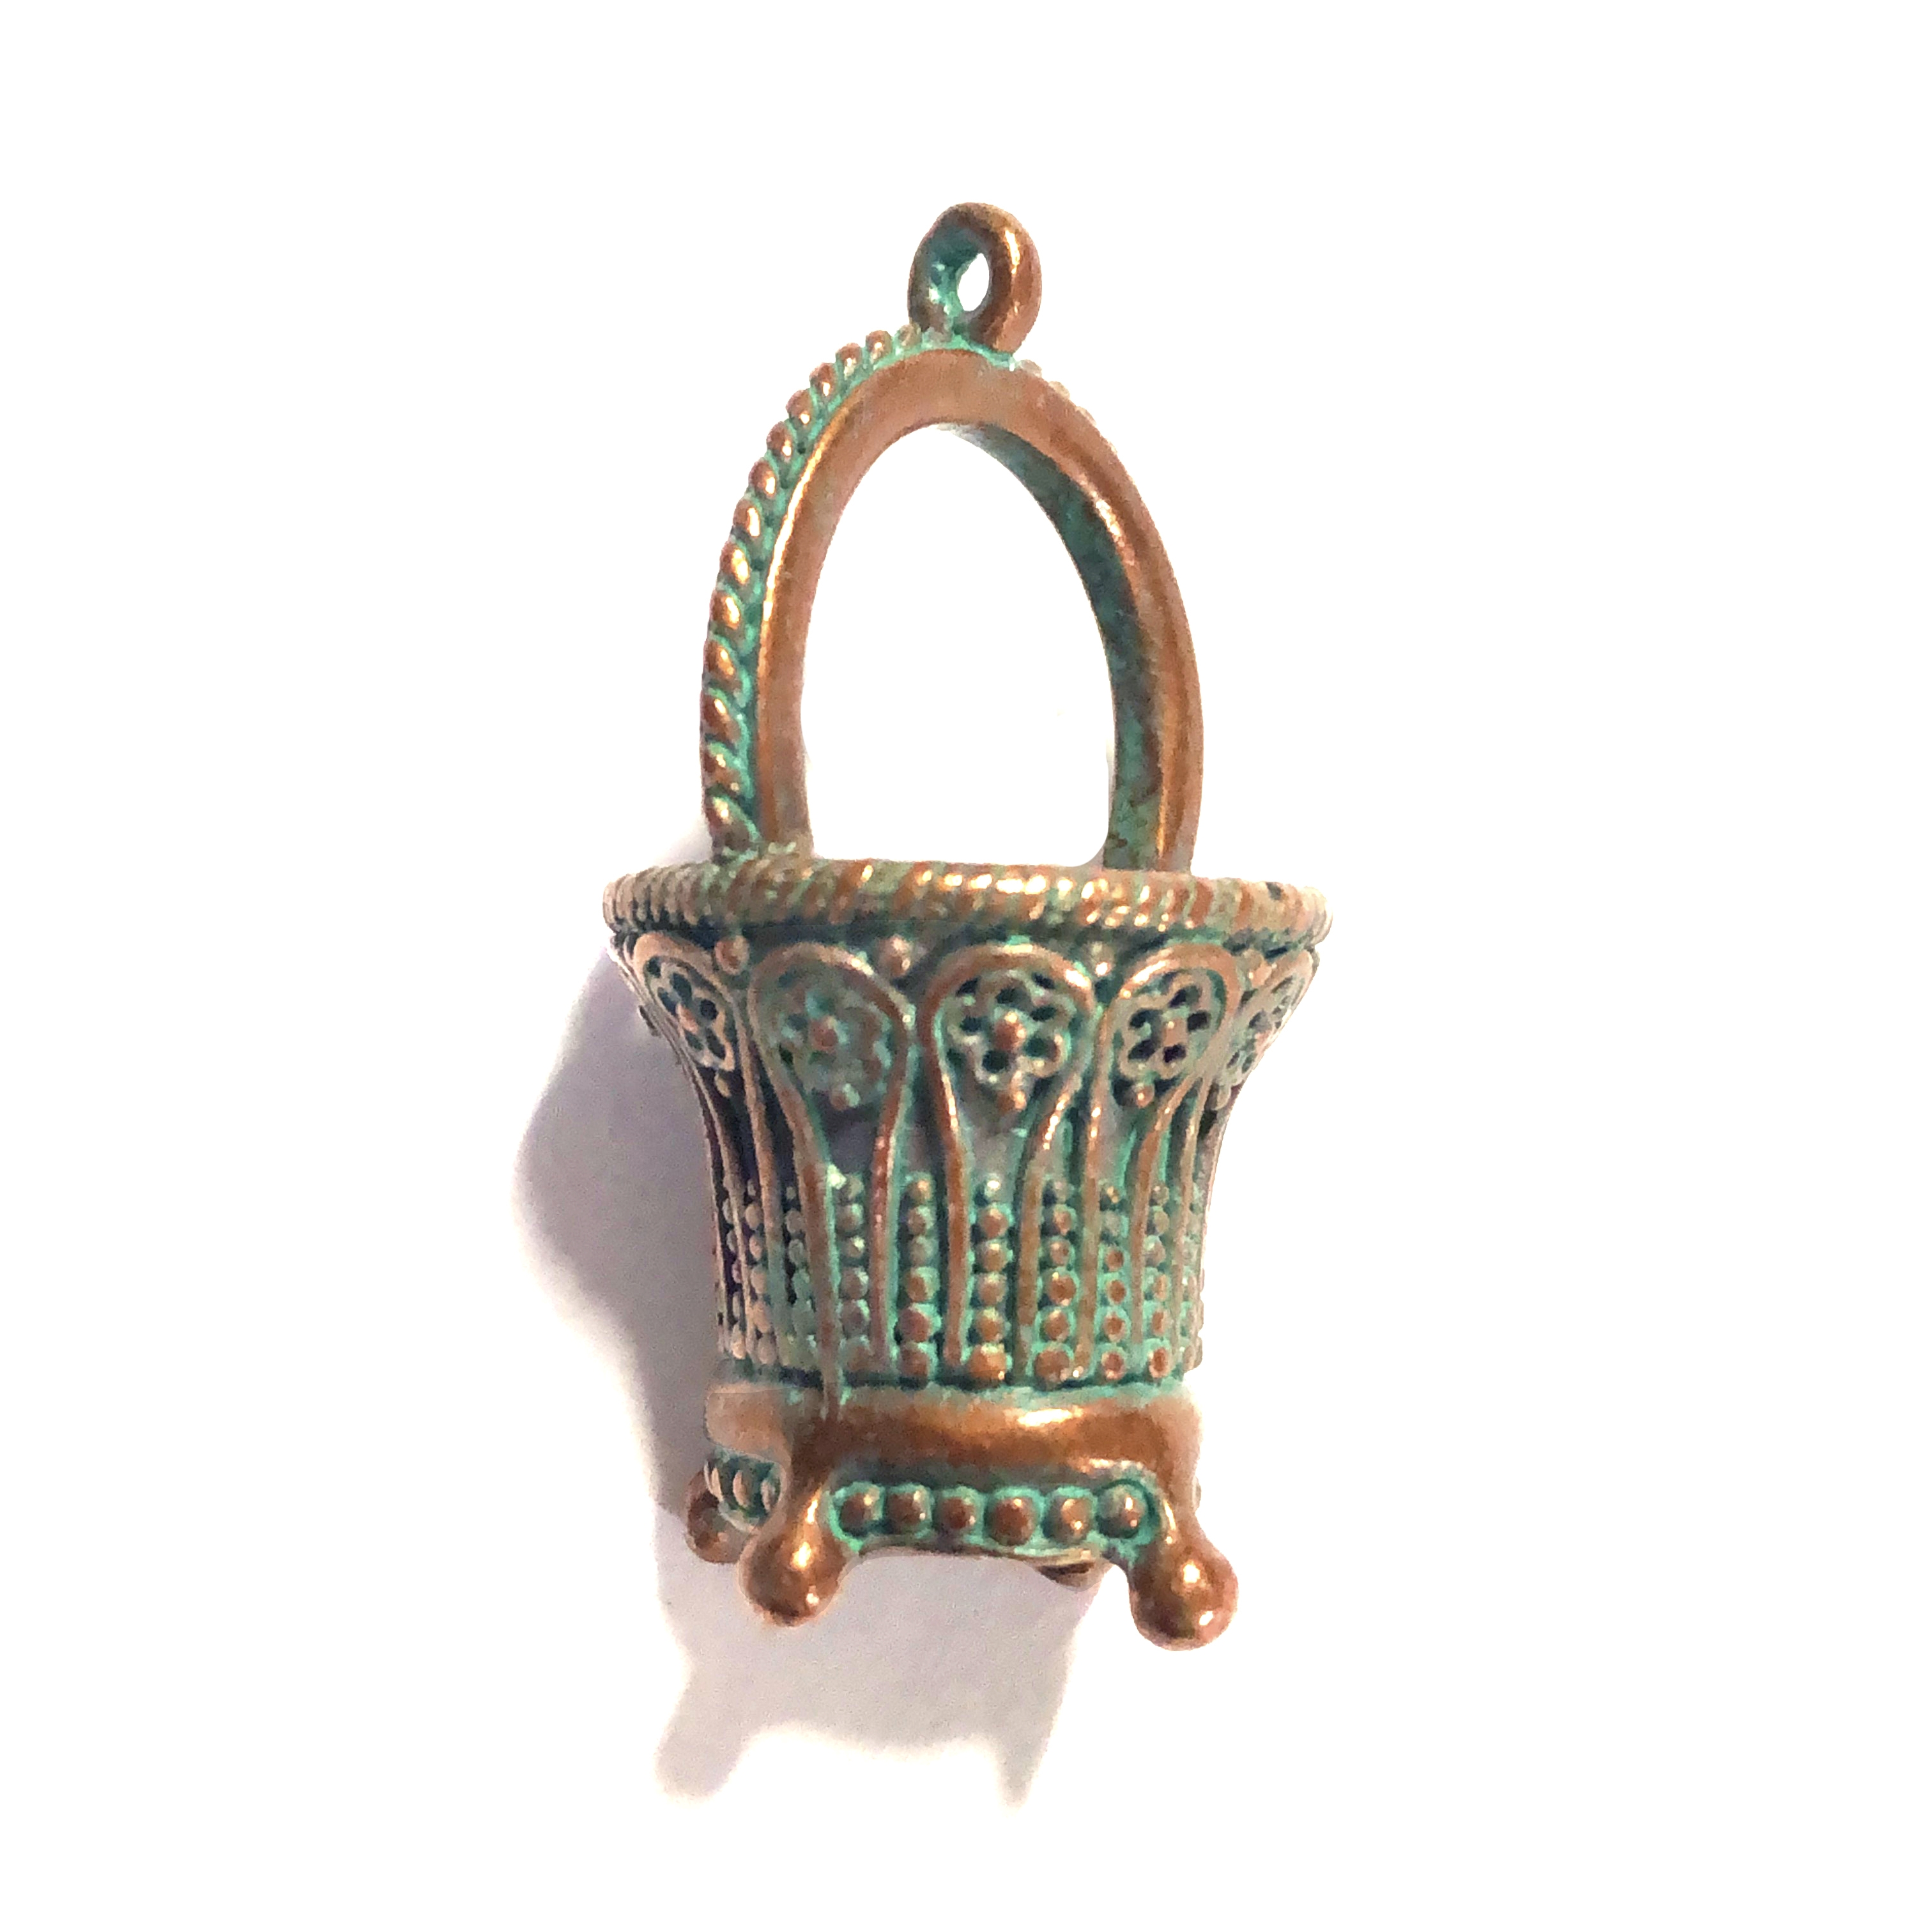 weathered copper, vintage designer basket, basket pendant, 0274, B'sue by 1928, lead free pewter castings, cast pewter jewelry findings, made in the USA, 1928 Company, B'sue Boutiques, mint green patina